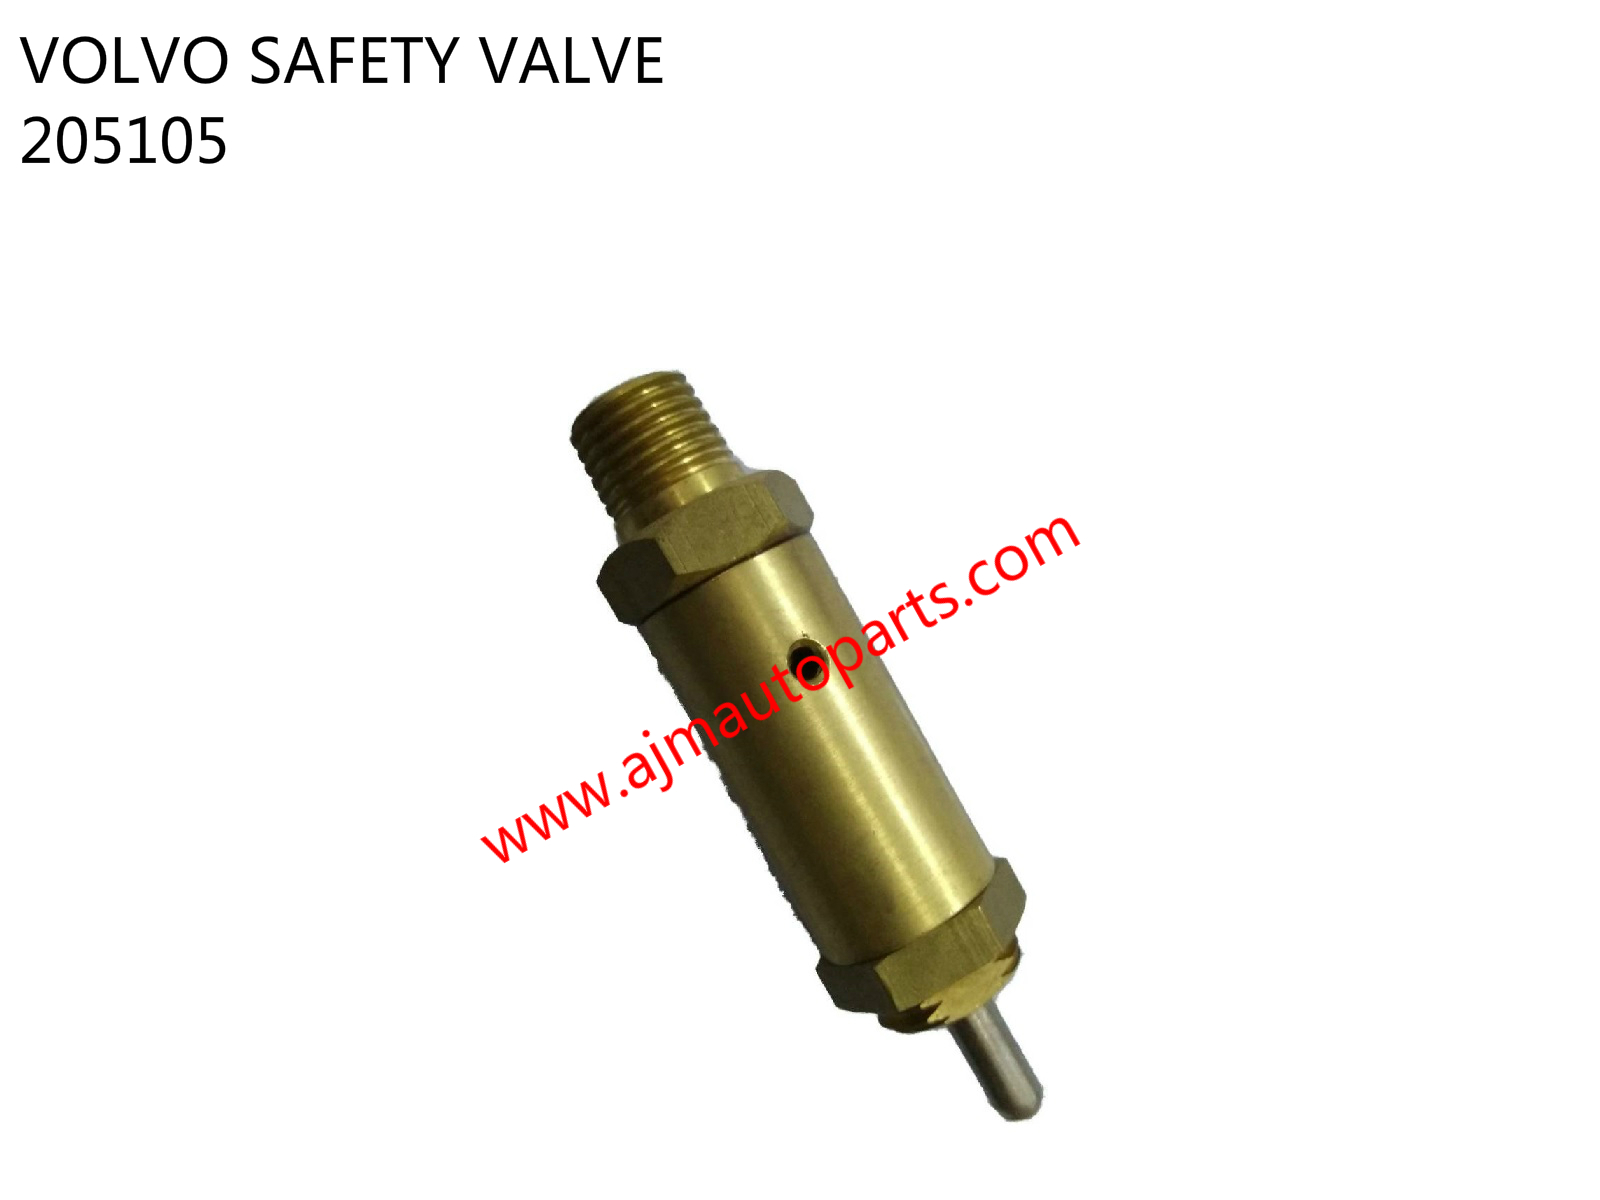 VOLVO SAFETY VALVE